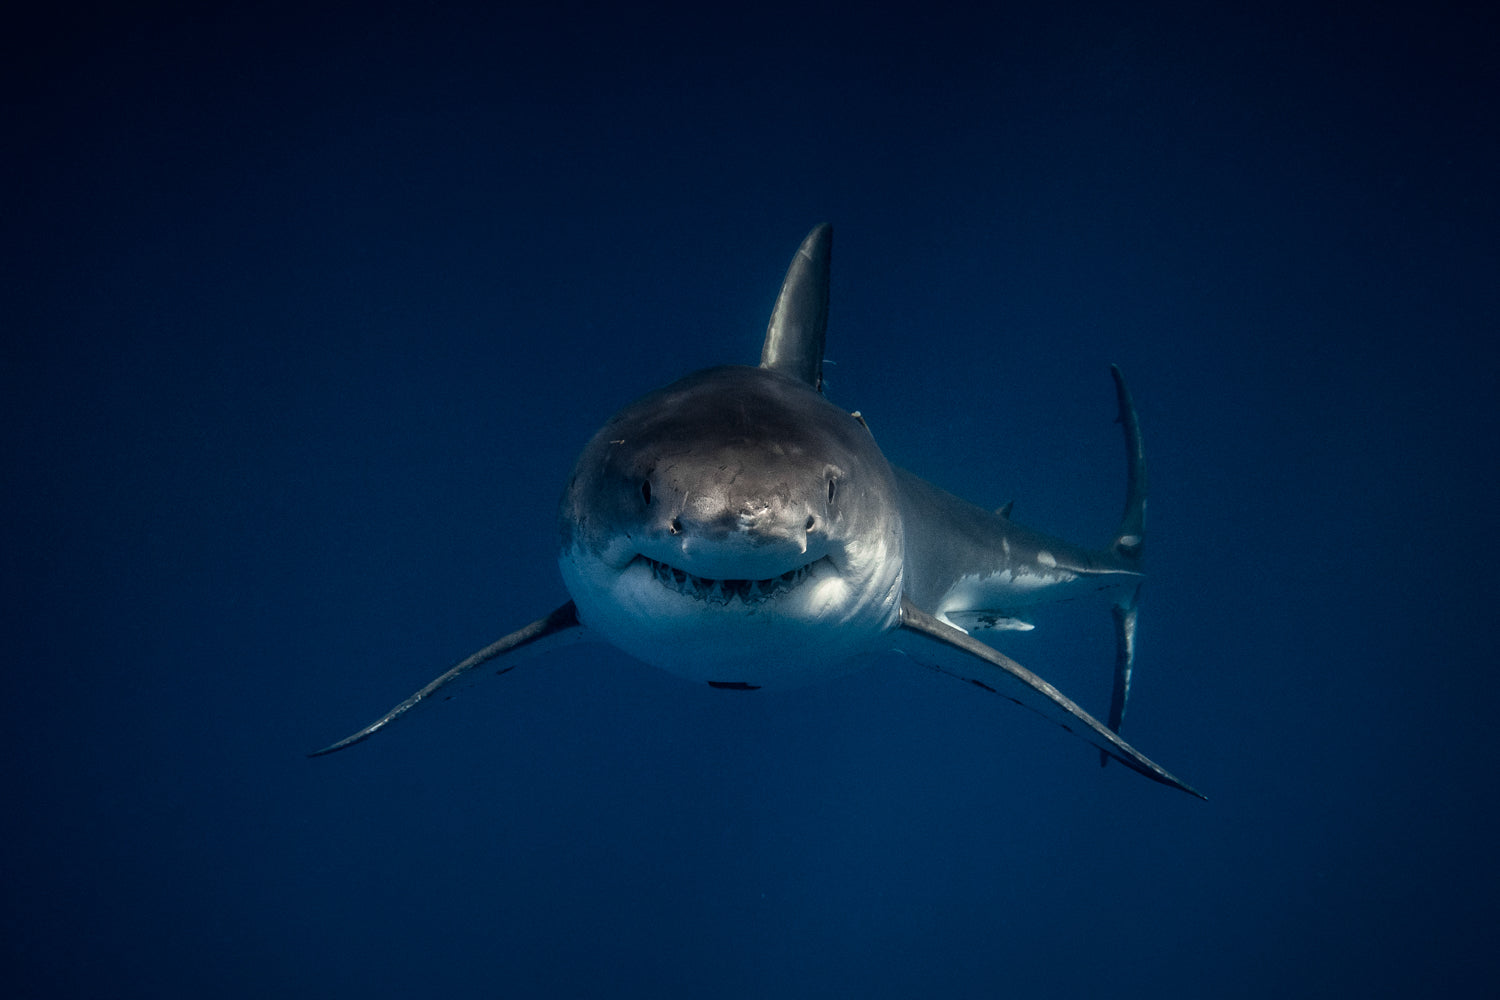 Face to face with a Great White Shark